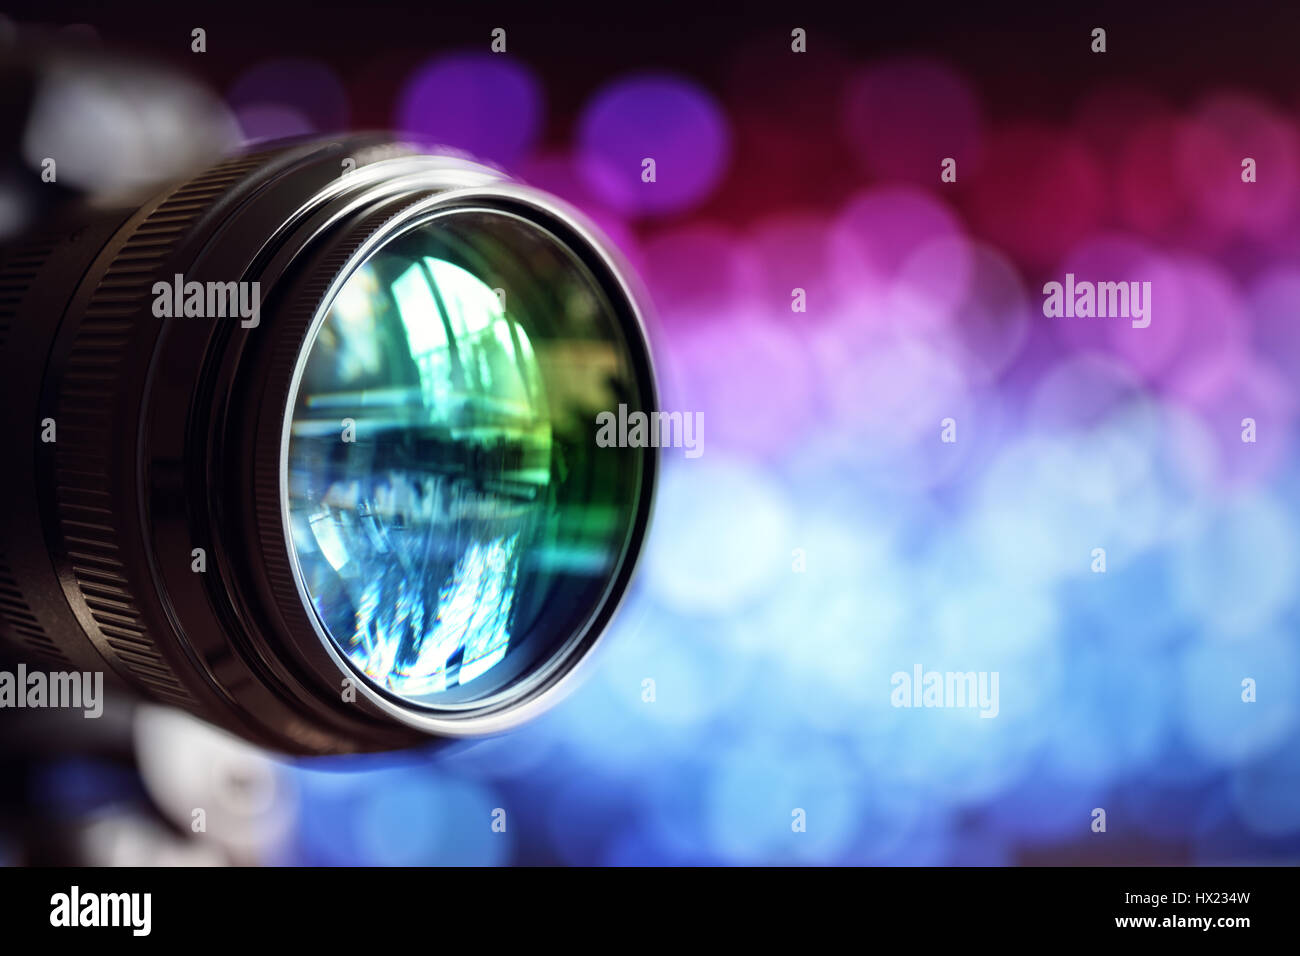 Digital camera lens with copy space - Stock Image